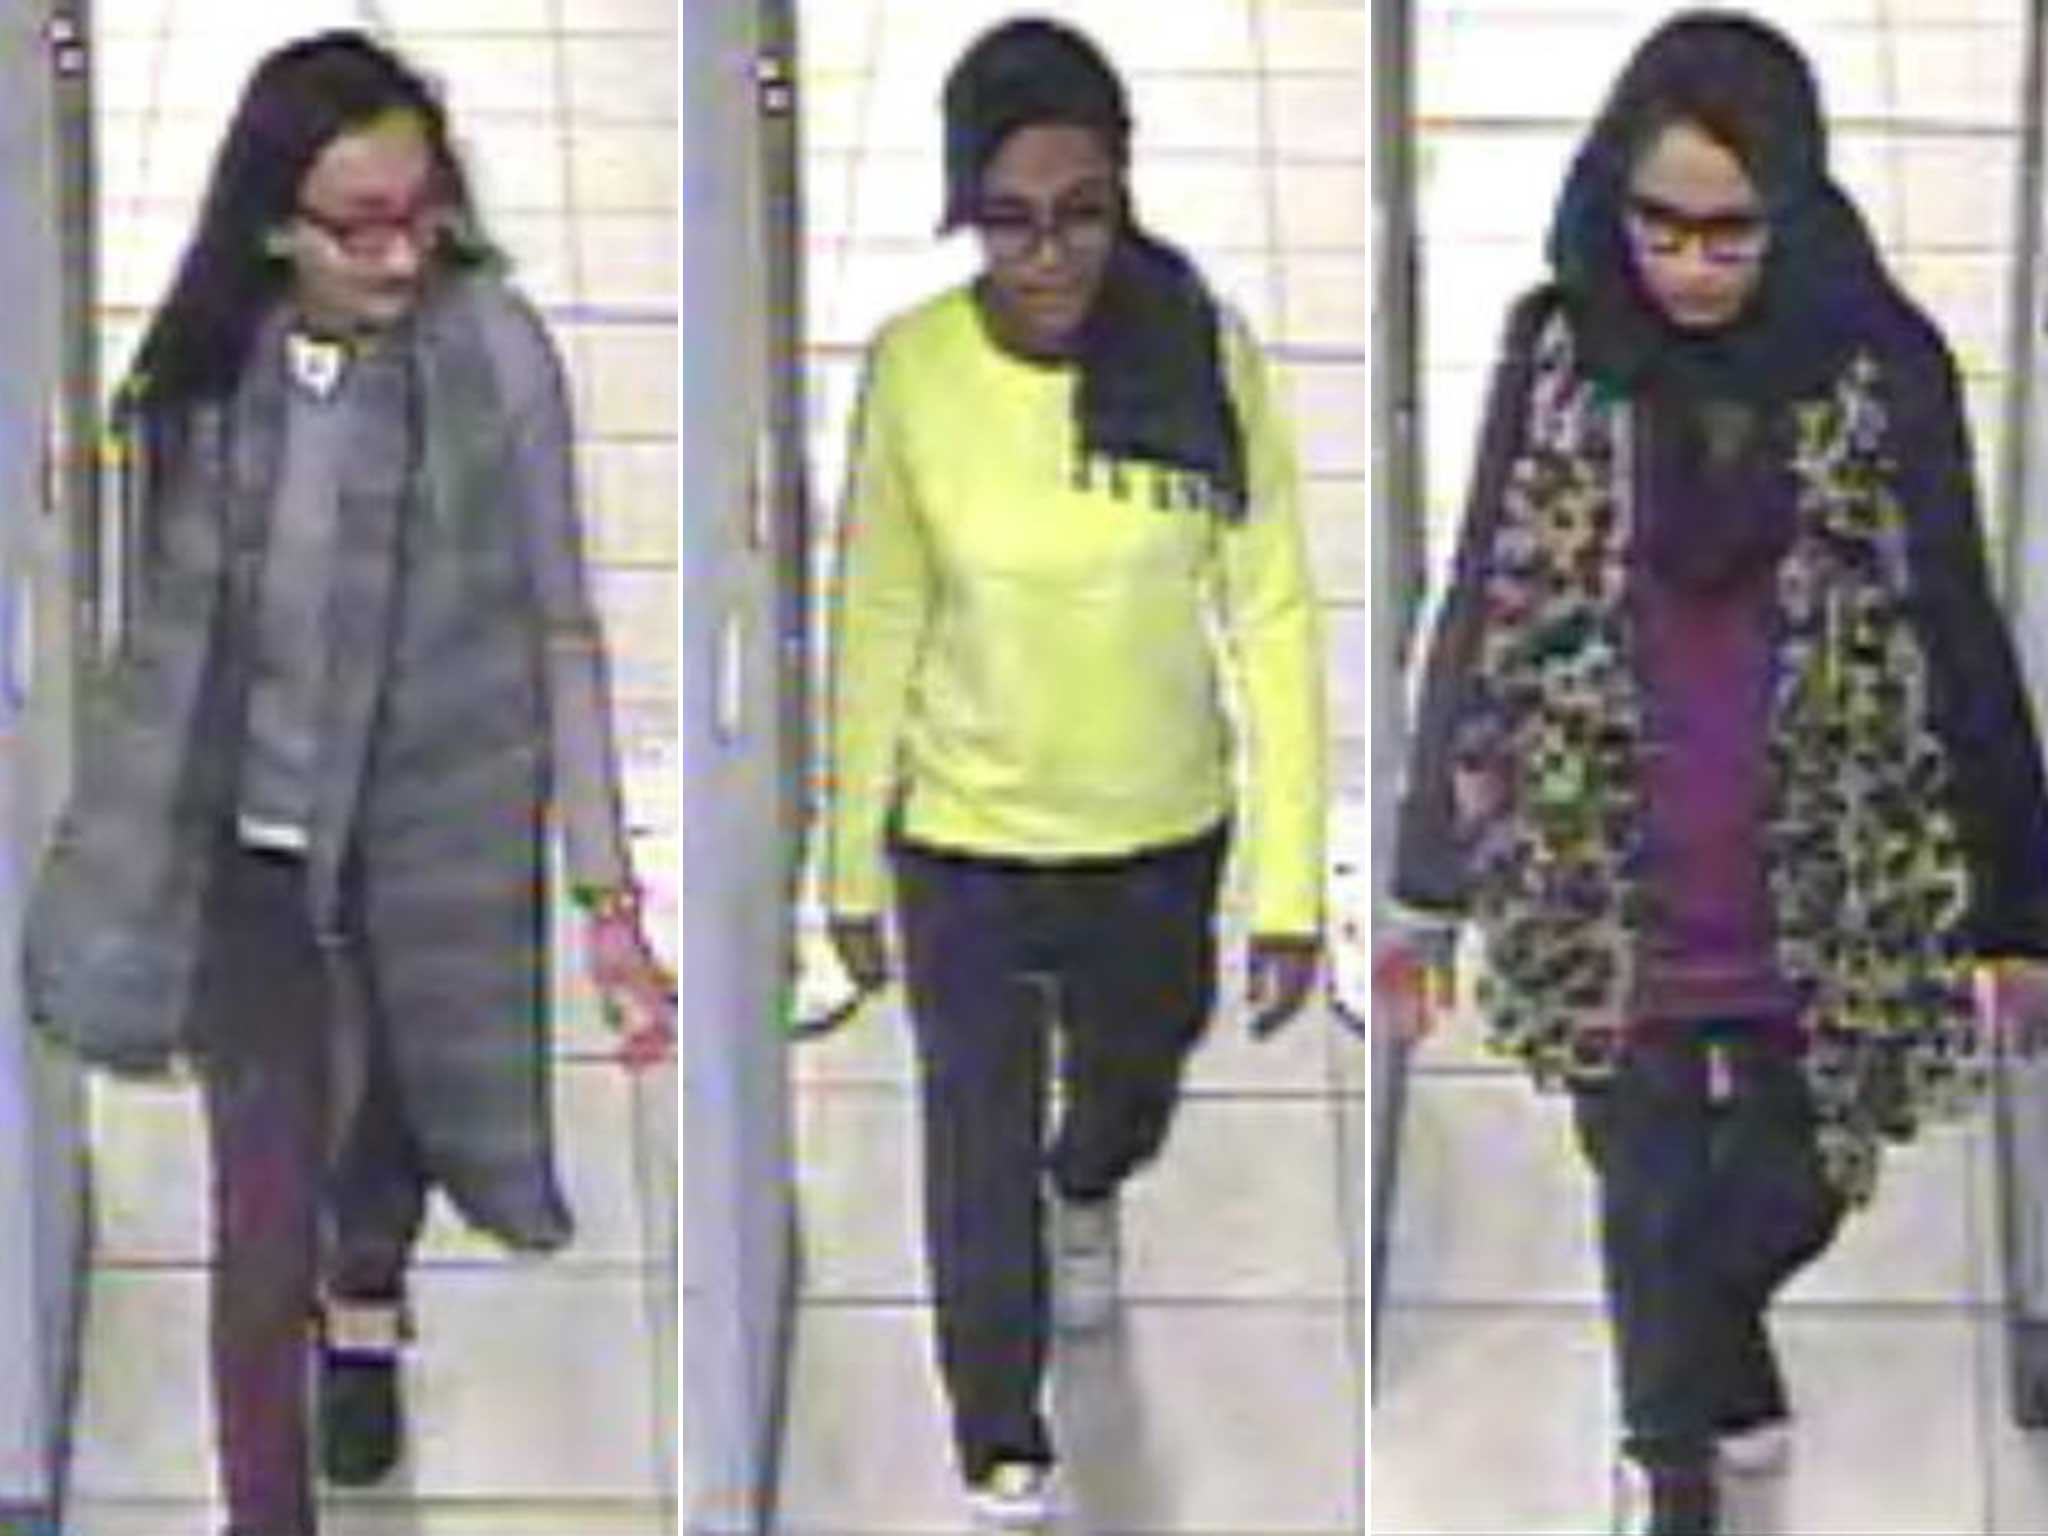 If teenage girls want to join Isis in the face of all its atrocities, then  they should leave and never return